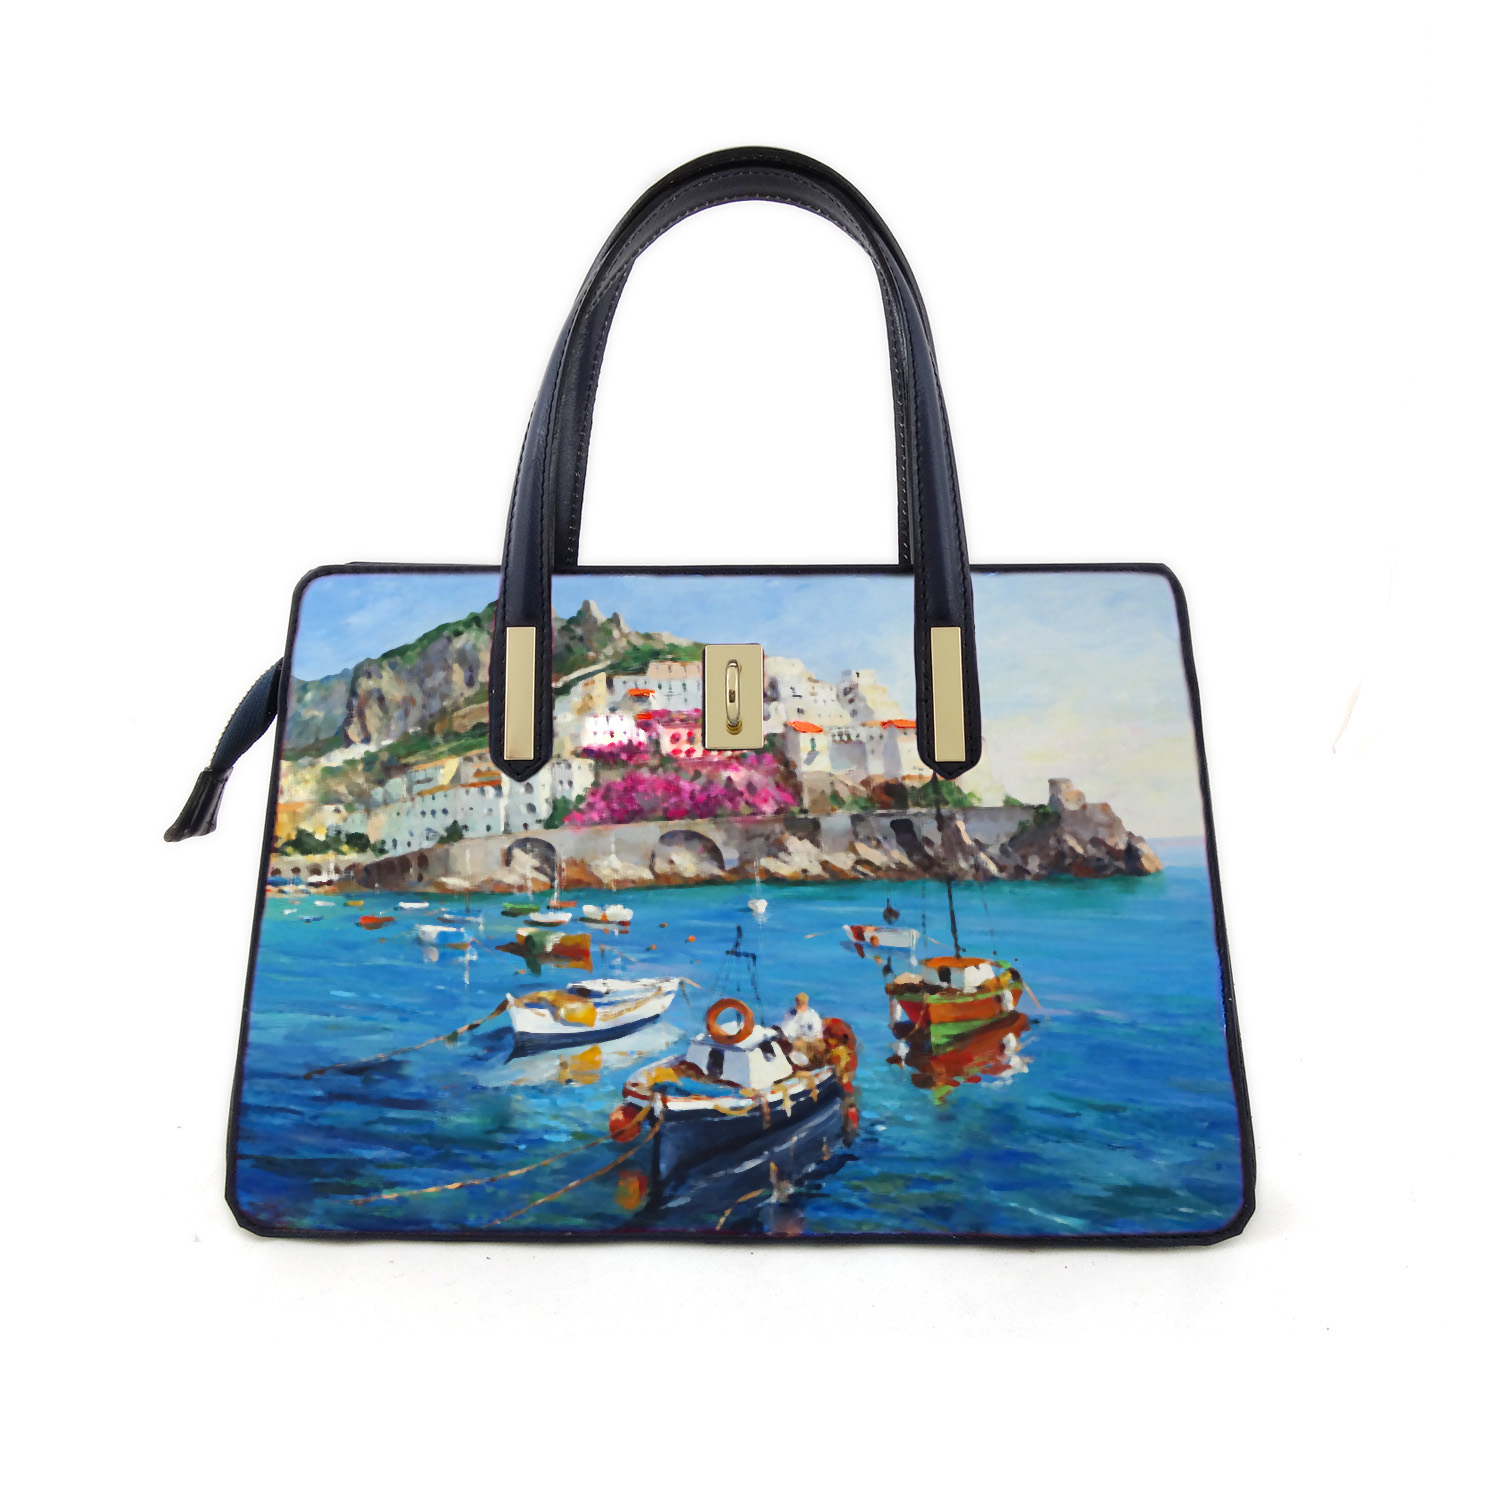 Handpainted bag - Amalfi to love